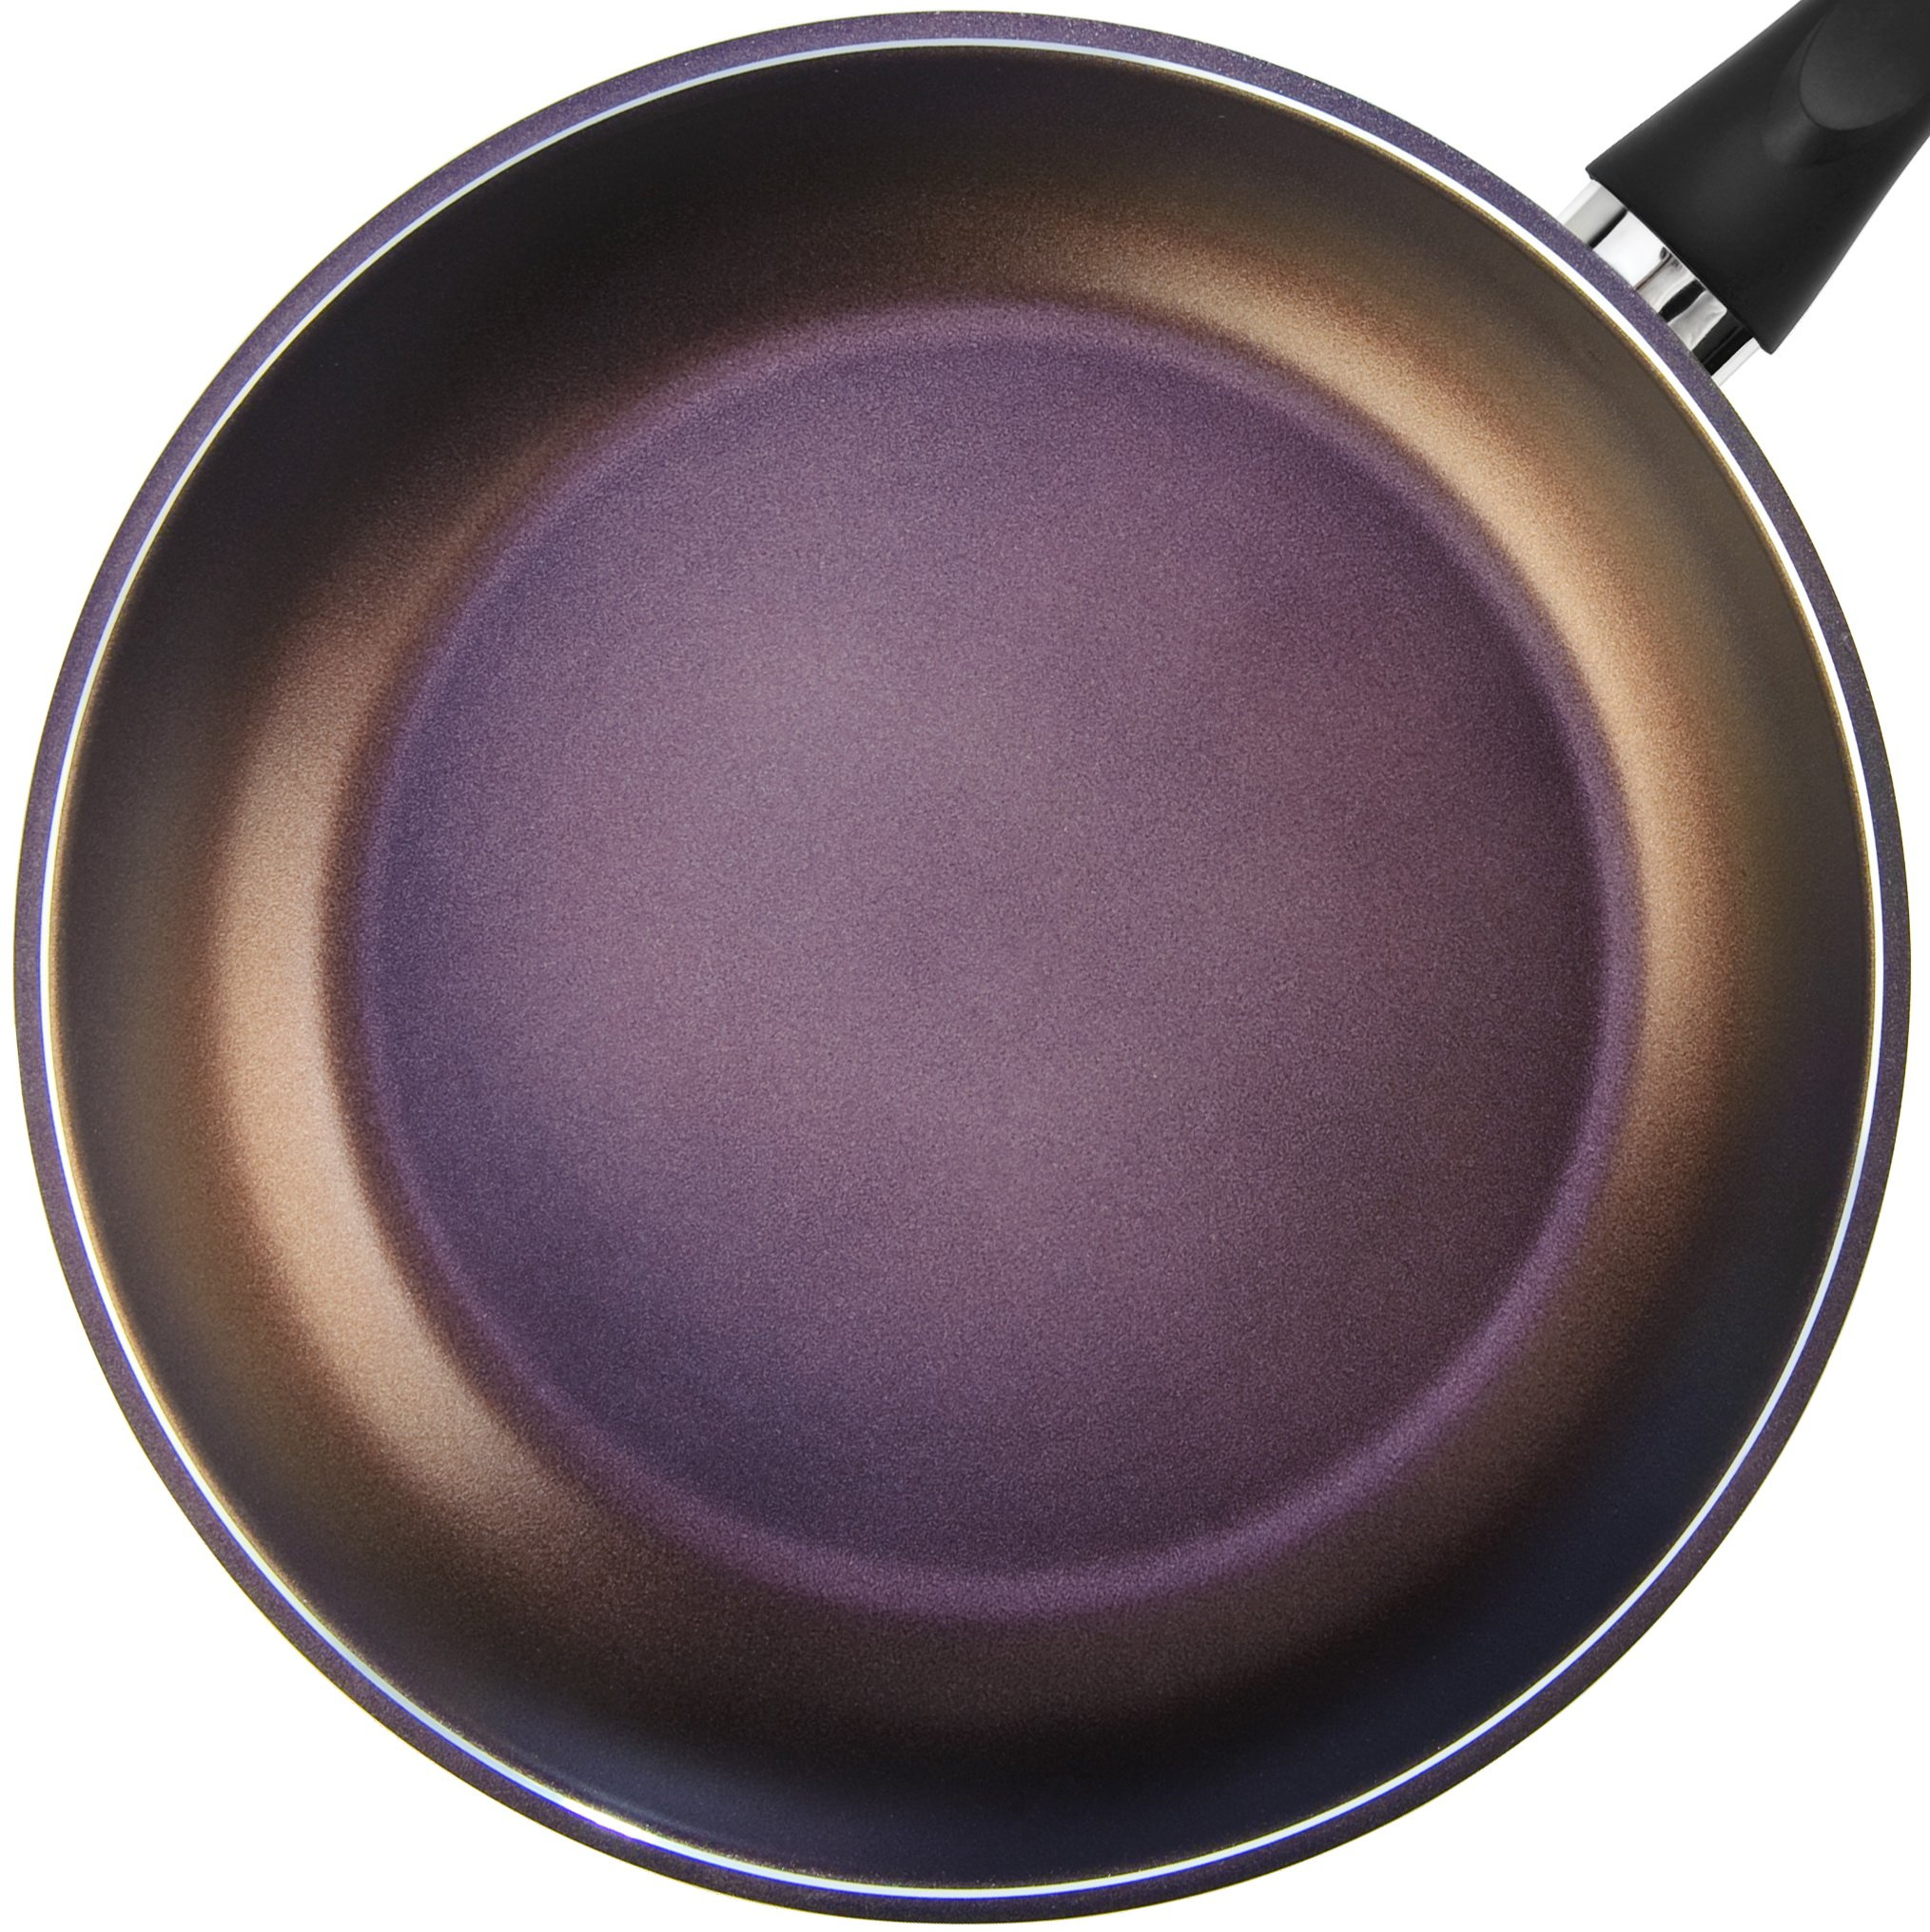 TeChef - Color Pan 12'' Frying Pan, Coated with DuPont Teflon Select - Colour Collection / Non-Stick Coating (PFOA Free) / (Aubergine Purple)